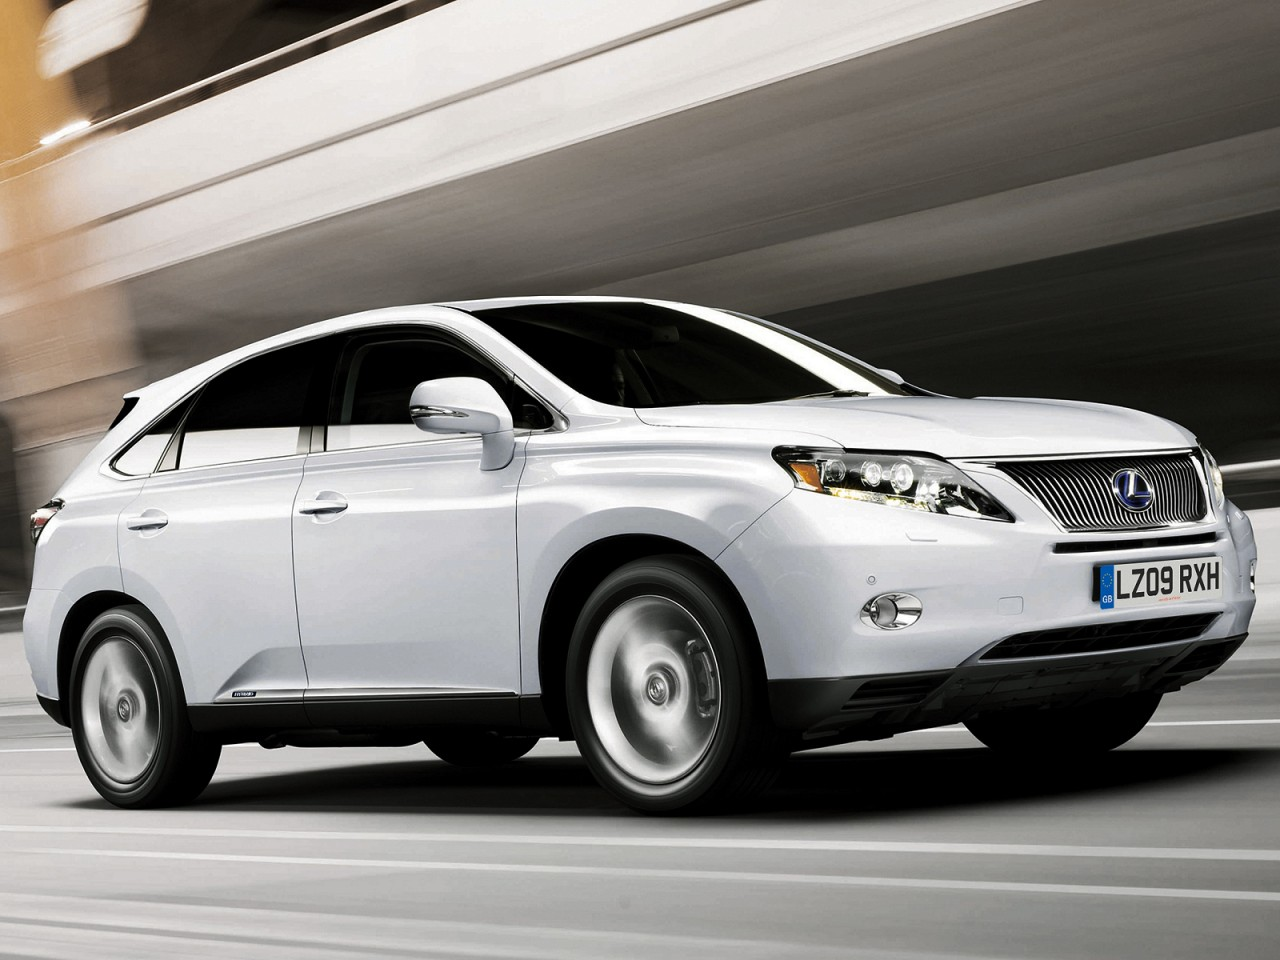 2010 Lexus Rx 450h on 450 hp electric motor